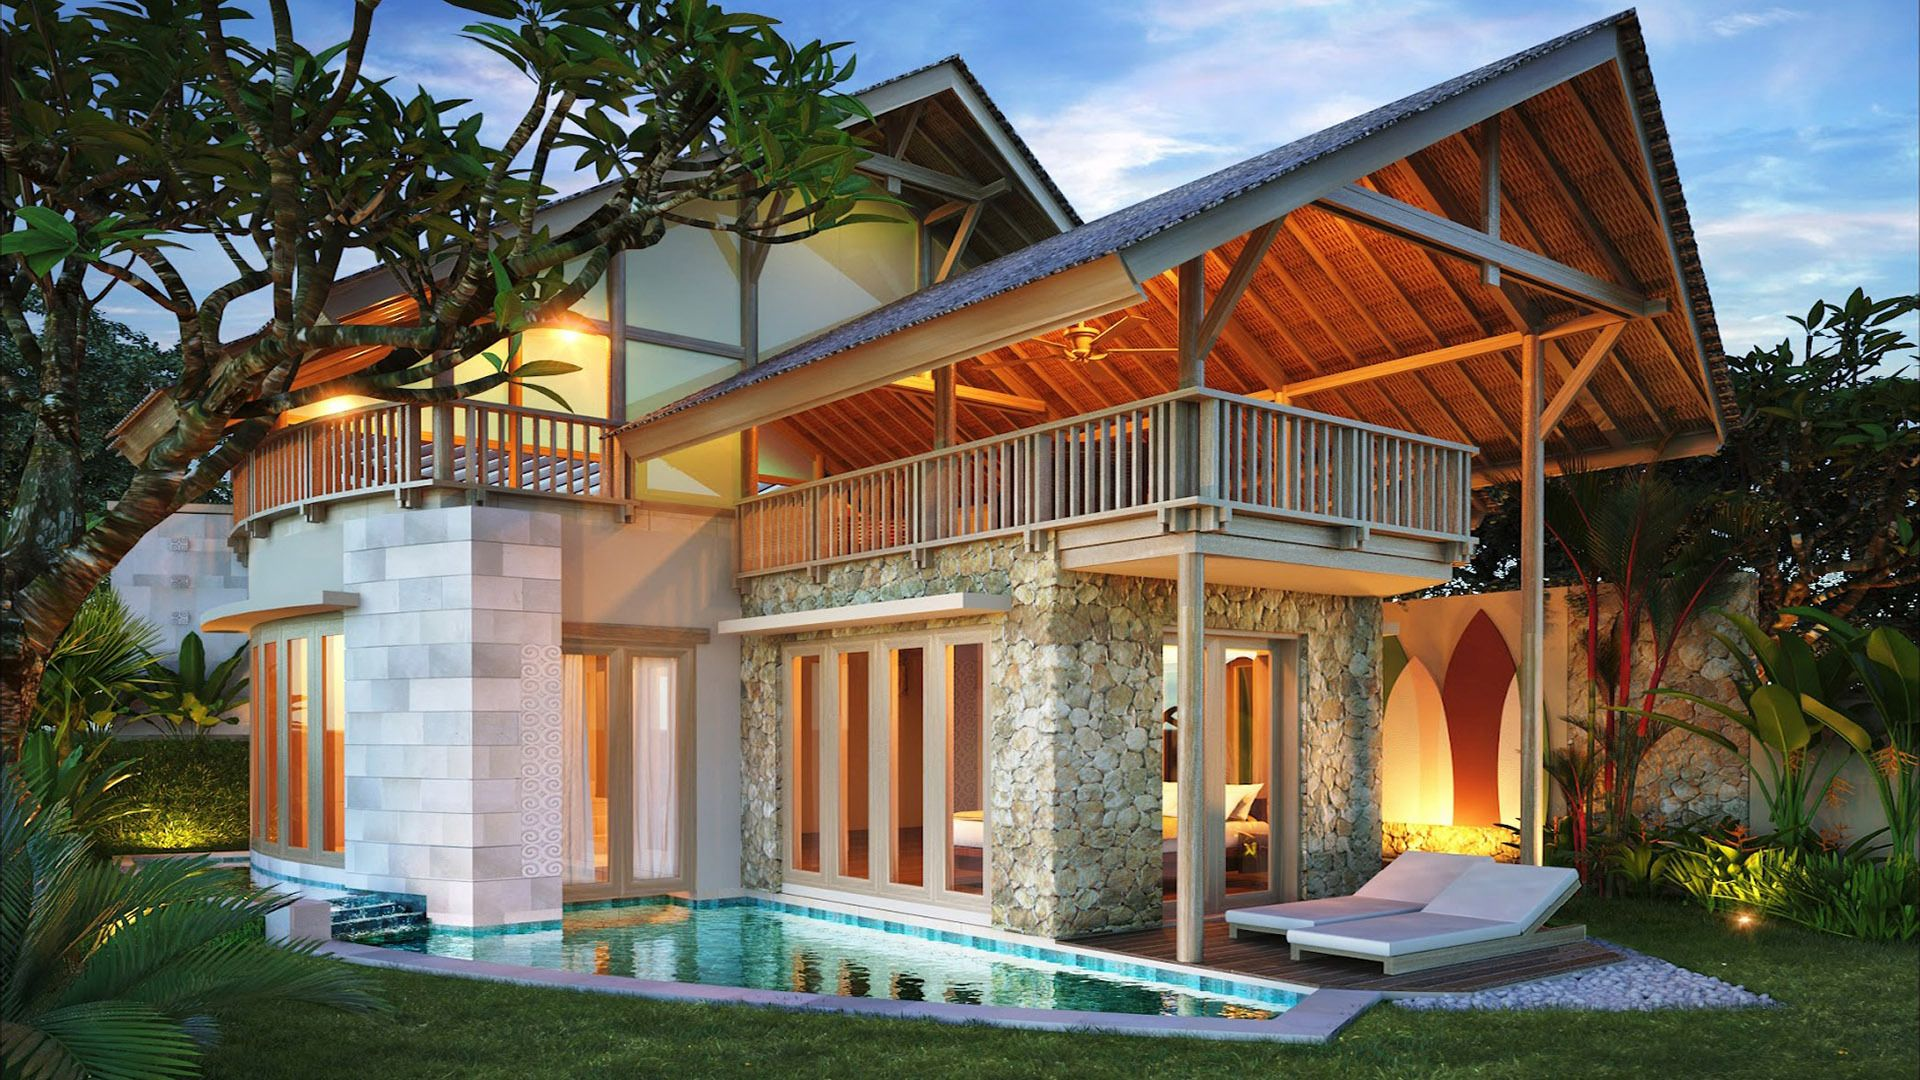 Pin On Places To Visit Dream house images hd wallpaper